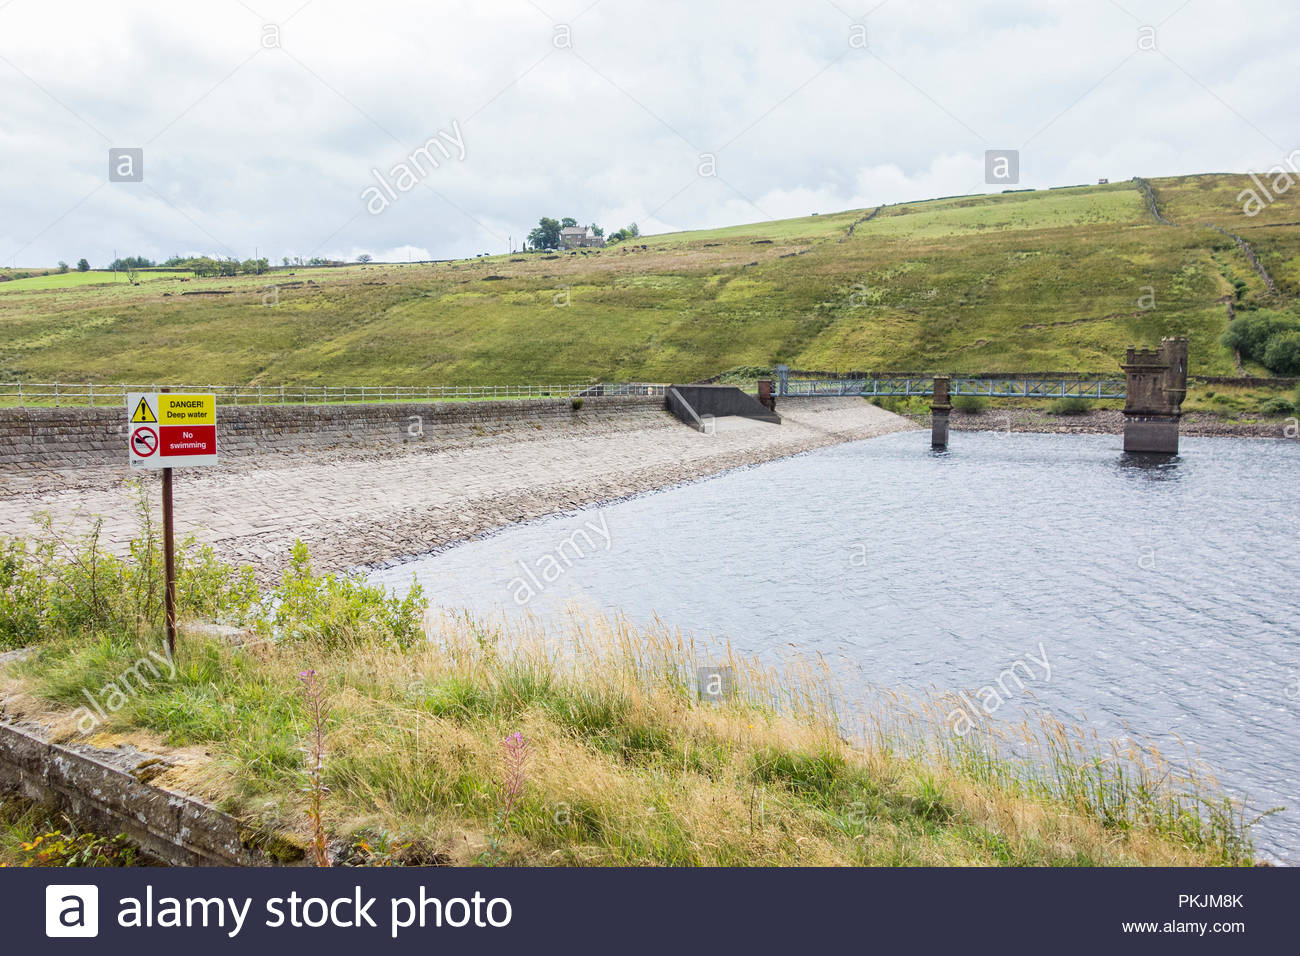 Very low water levels in the drought of the summer of 2018 at the Ogden Reservoirs near Barley in Lancashire, managed by United Utilities - Stock Image